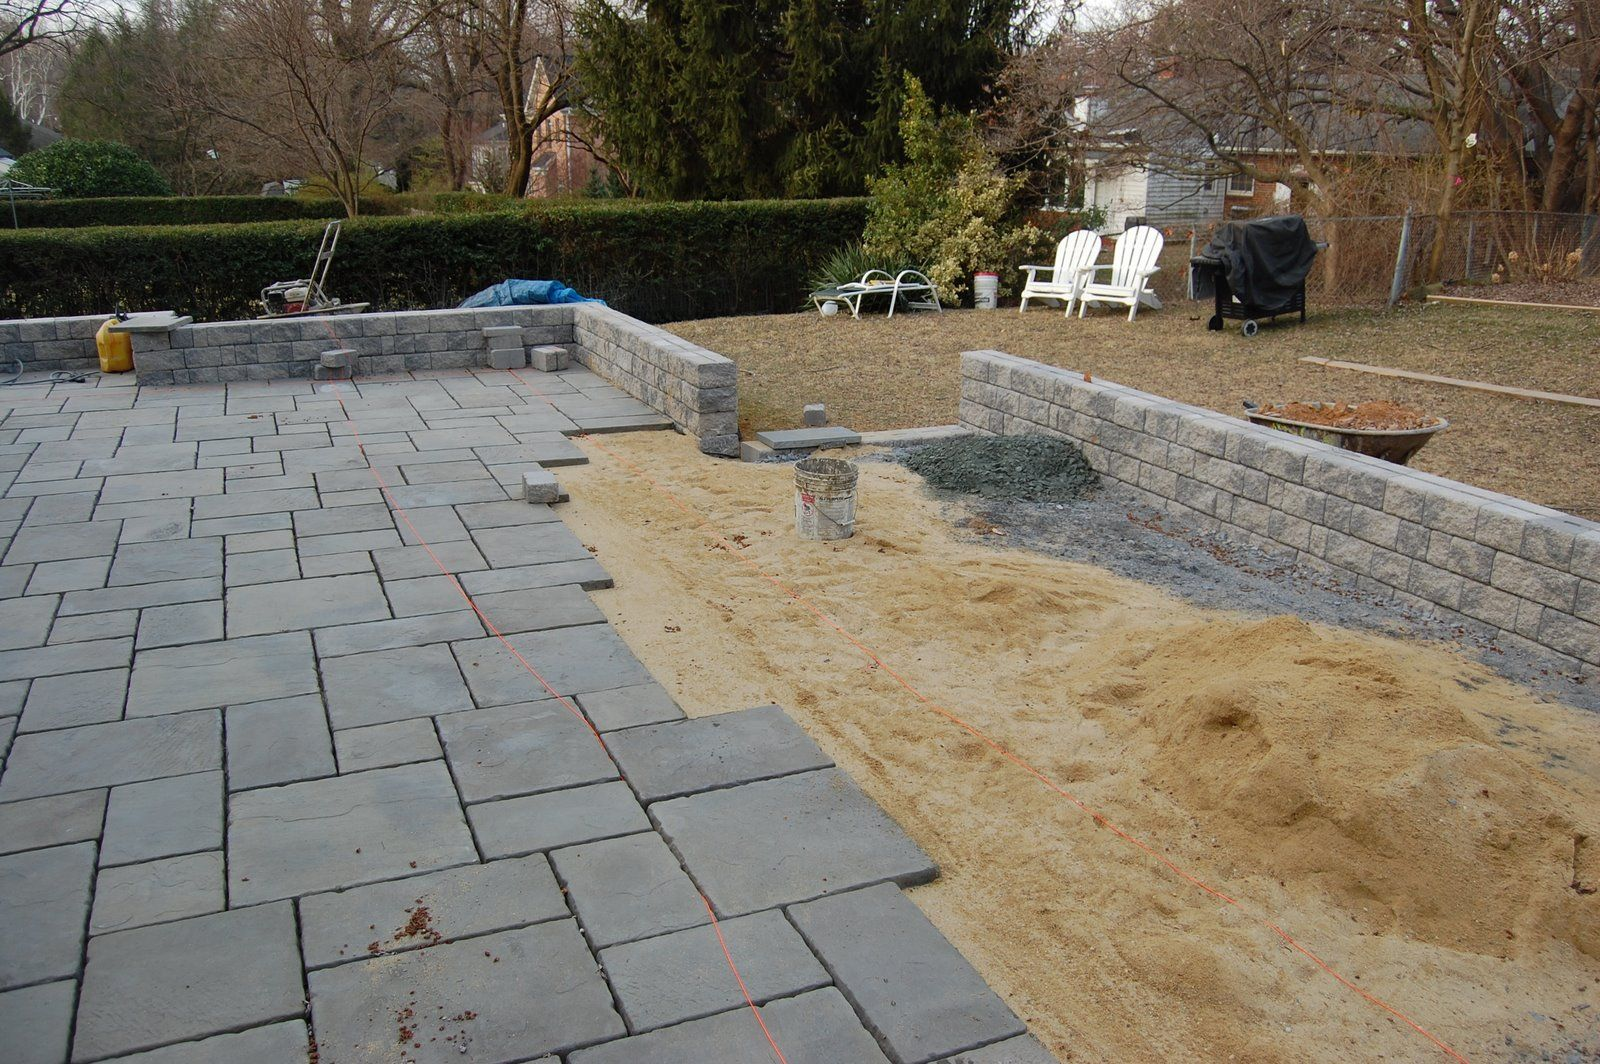 ideas pavers paver particular to gallery for this a home great patio backyard of share brick gorgeous pin designs stone collection you your will different